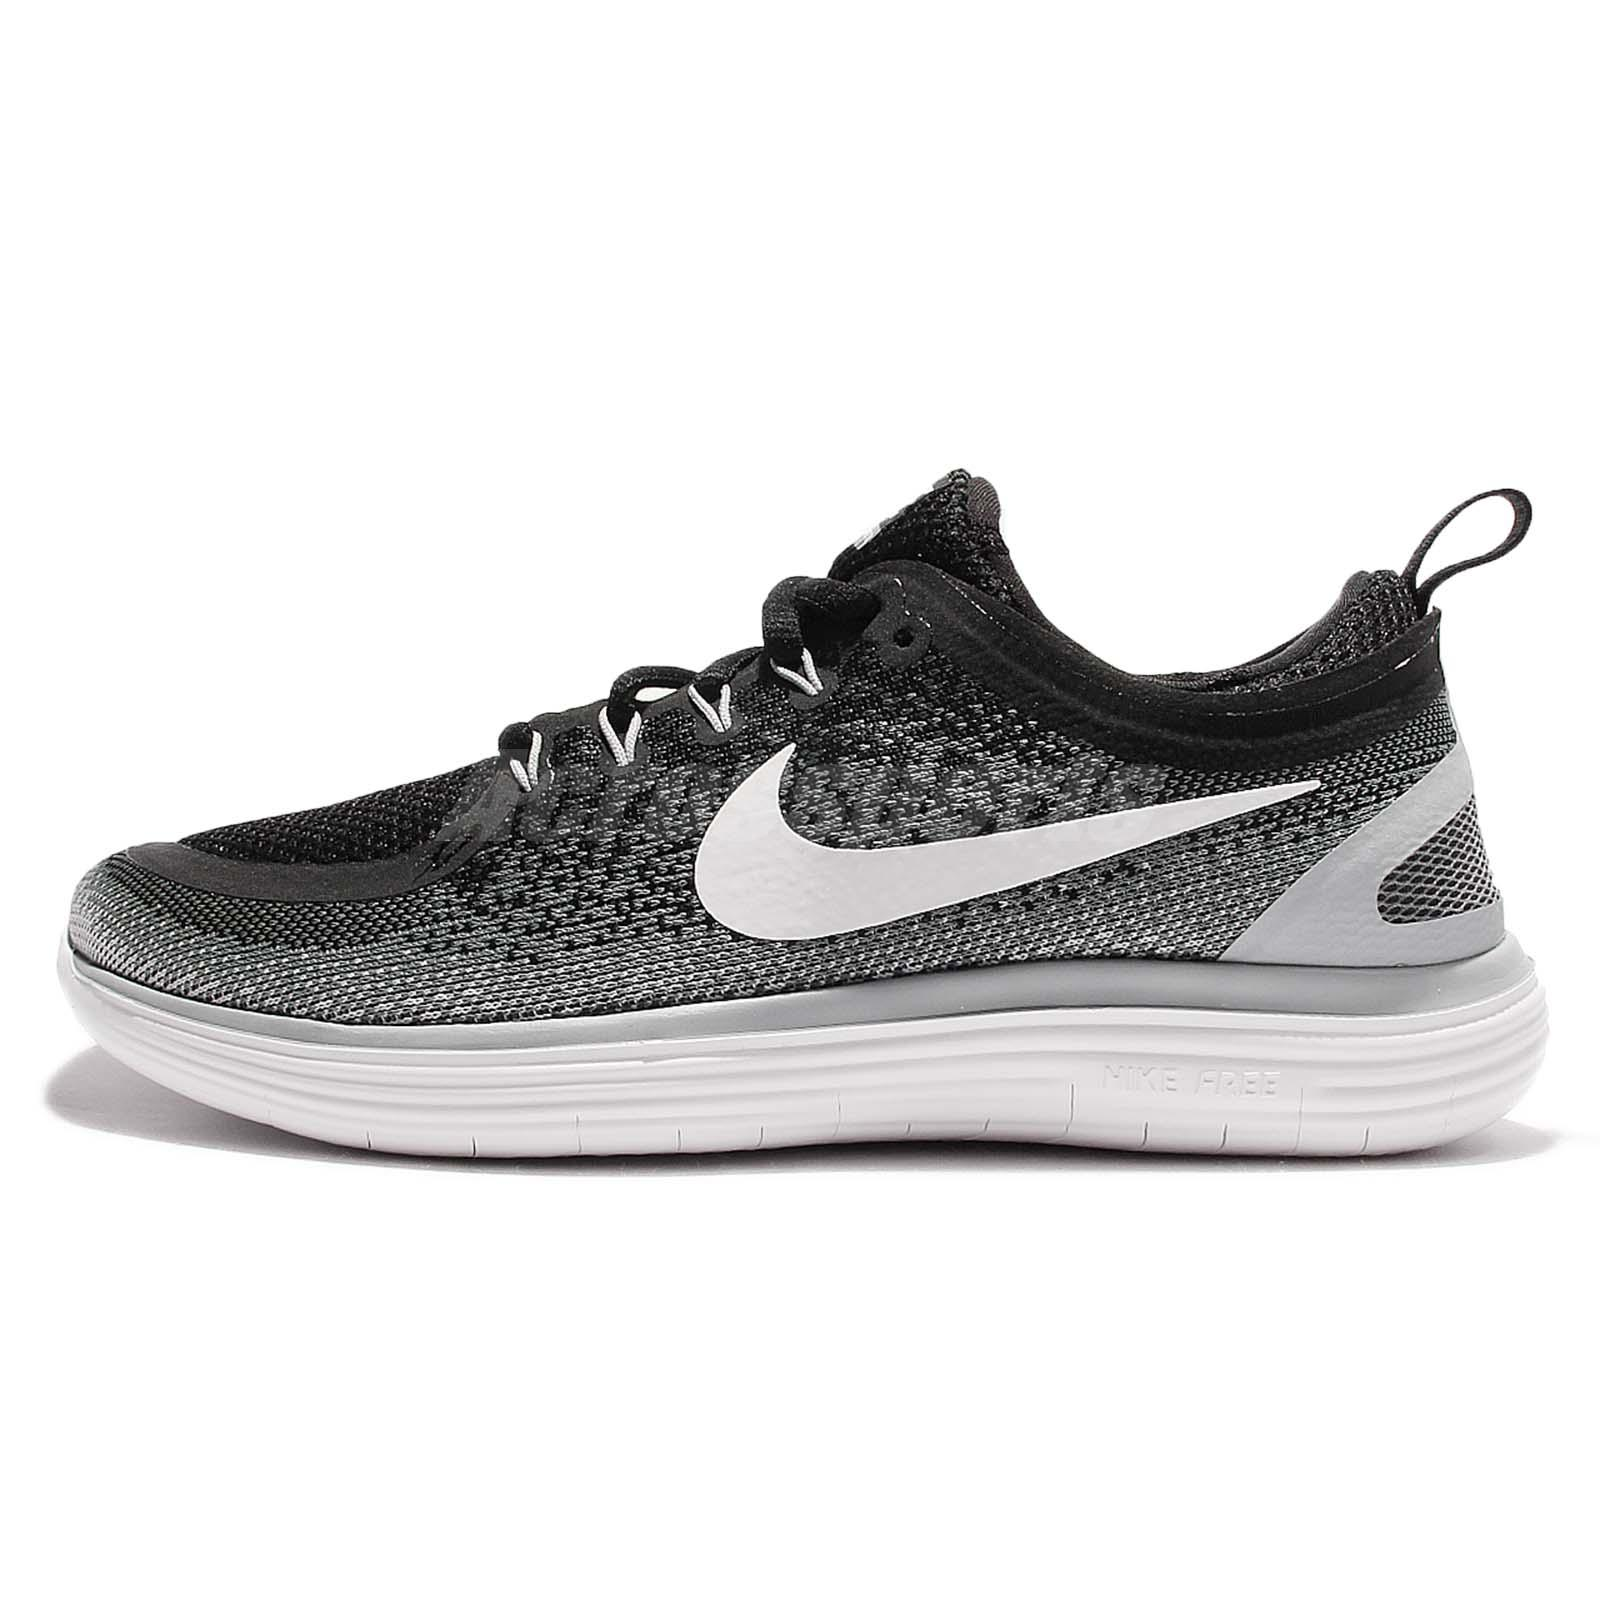 cd5ba93ad97 Wmns Nike Free RN Distance 2 Run Black White Women Running Shoes 863776-001